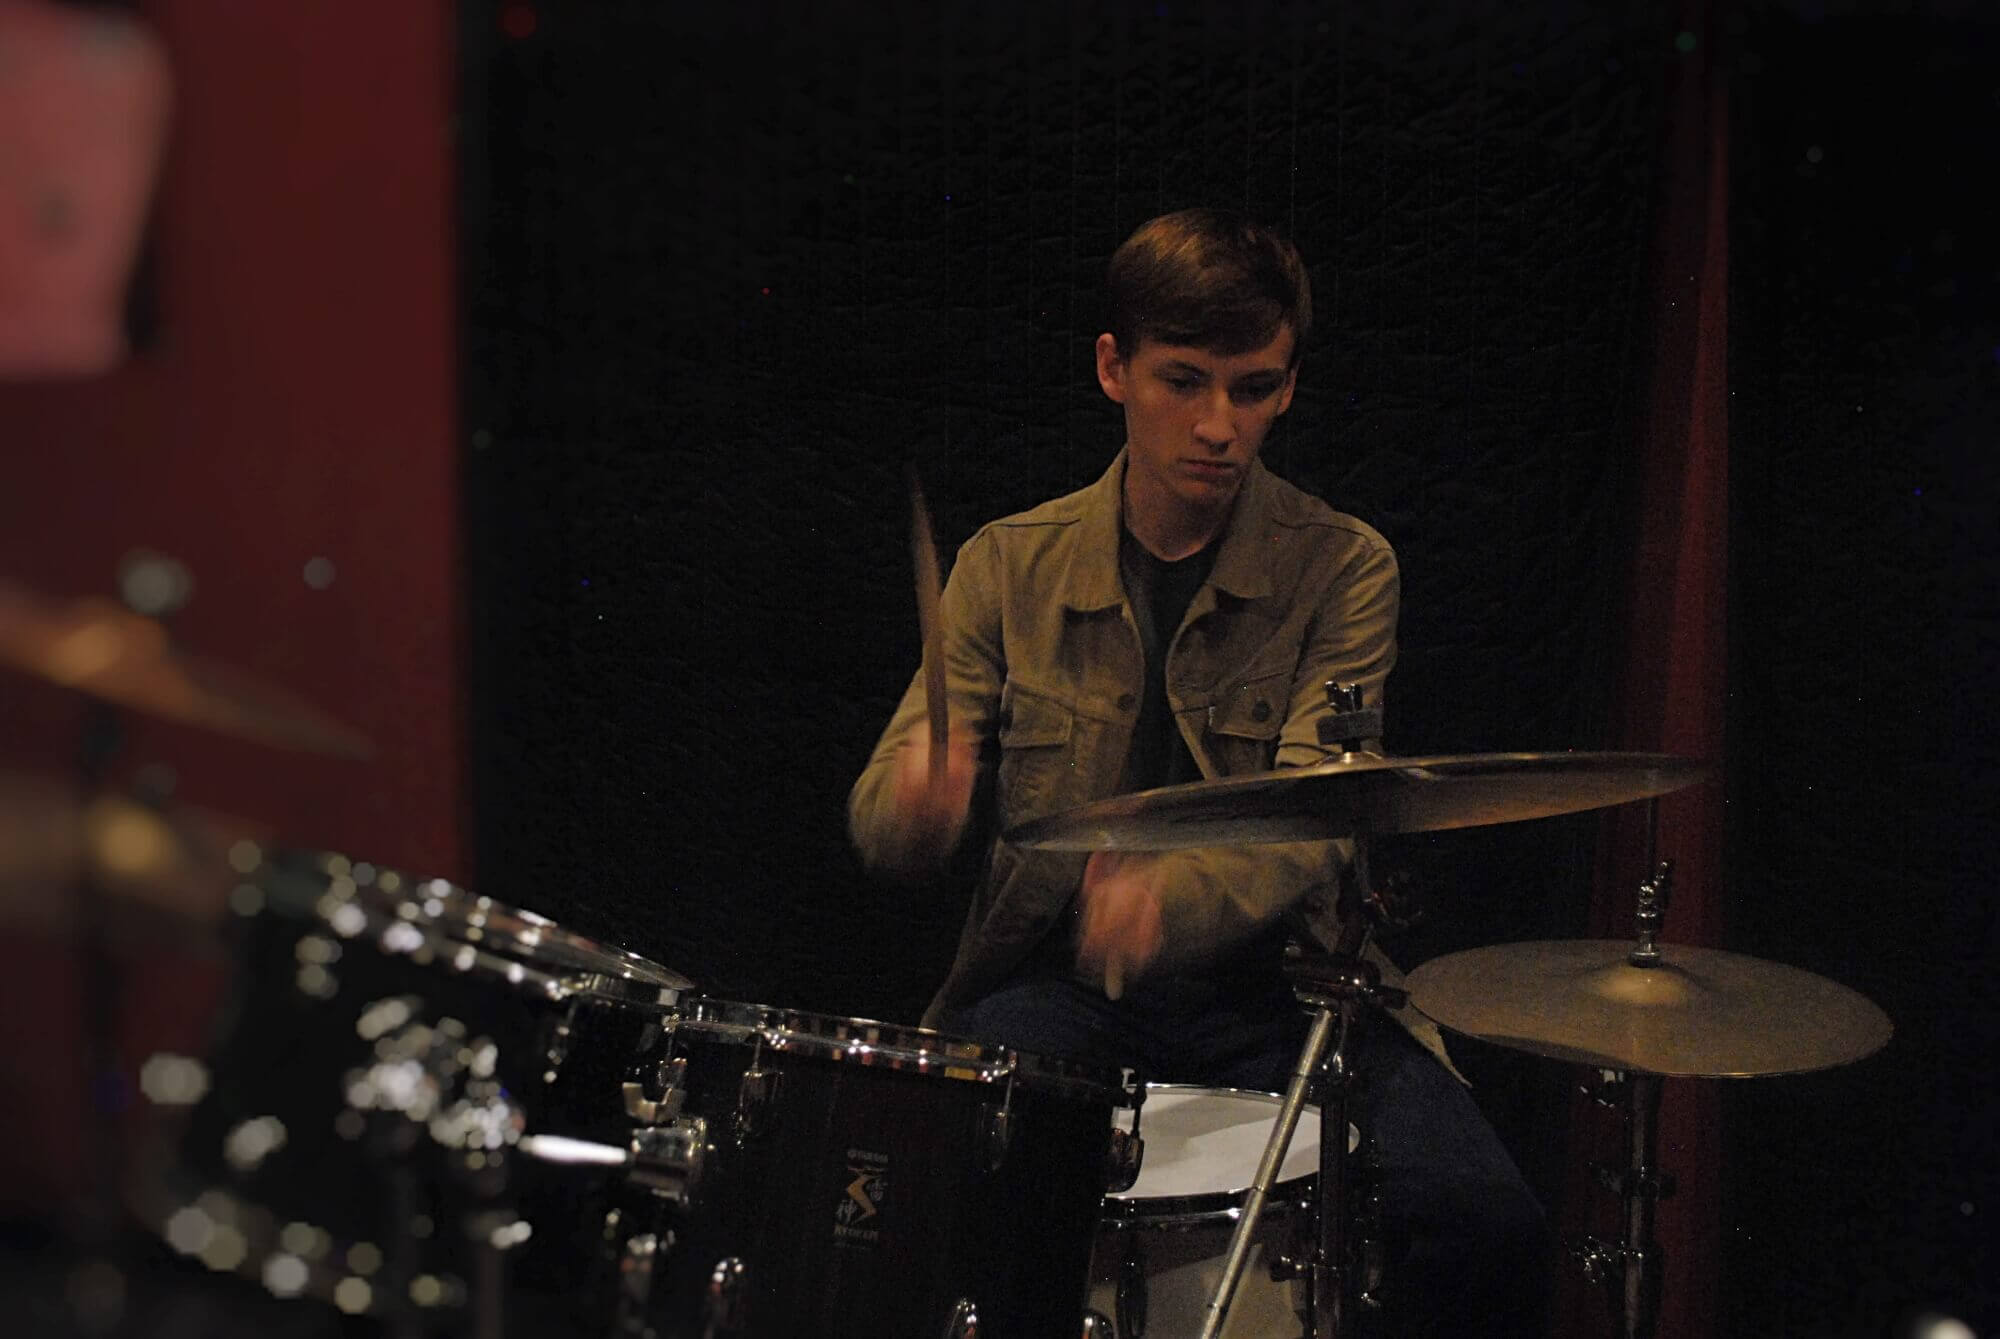 A Katy House Band student works on his drum fills during rehearsal.